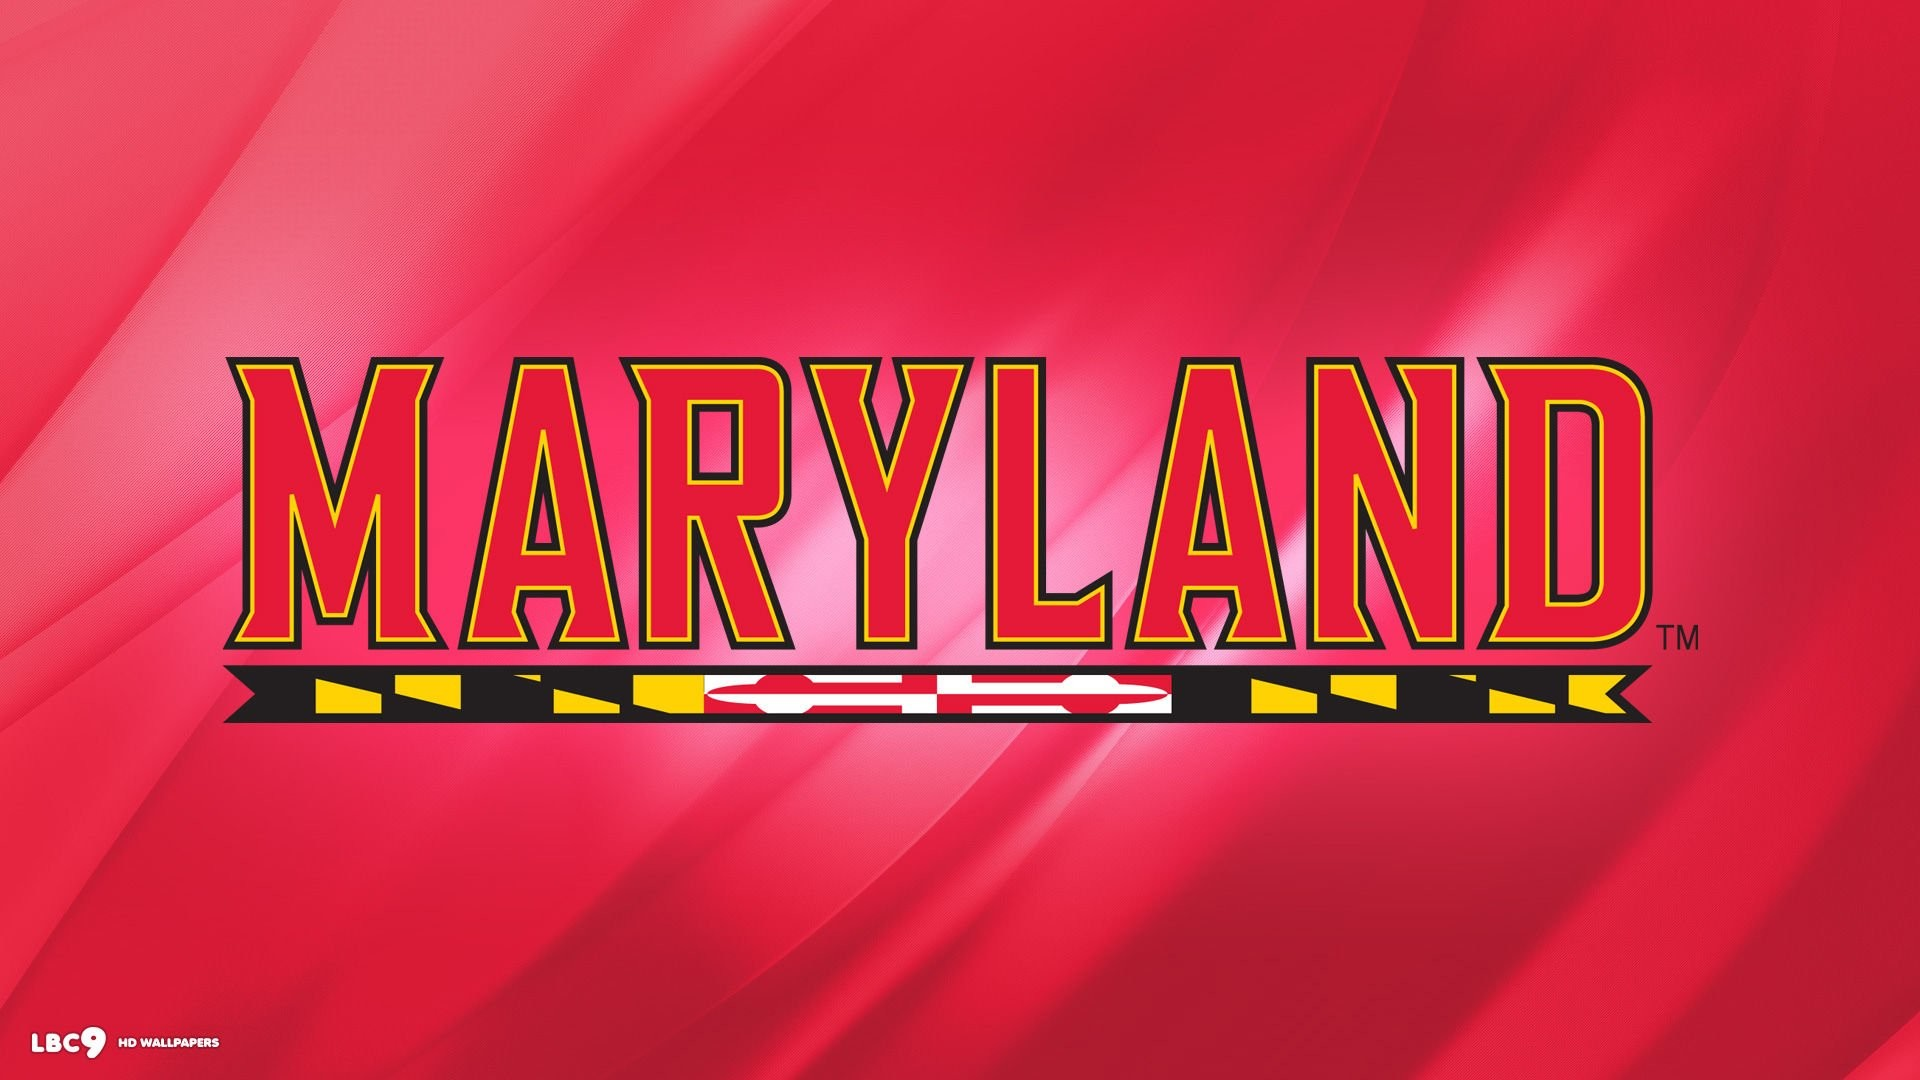 University of Maryland Wallpaper 57 images 1920x1080